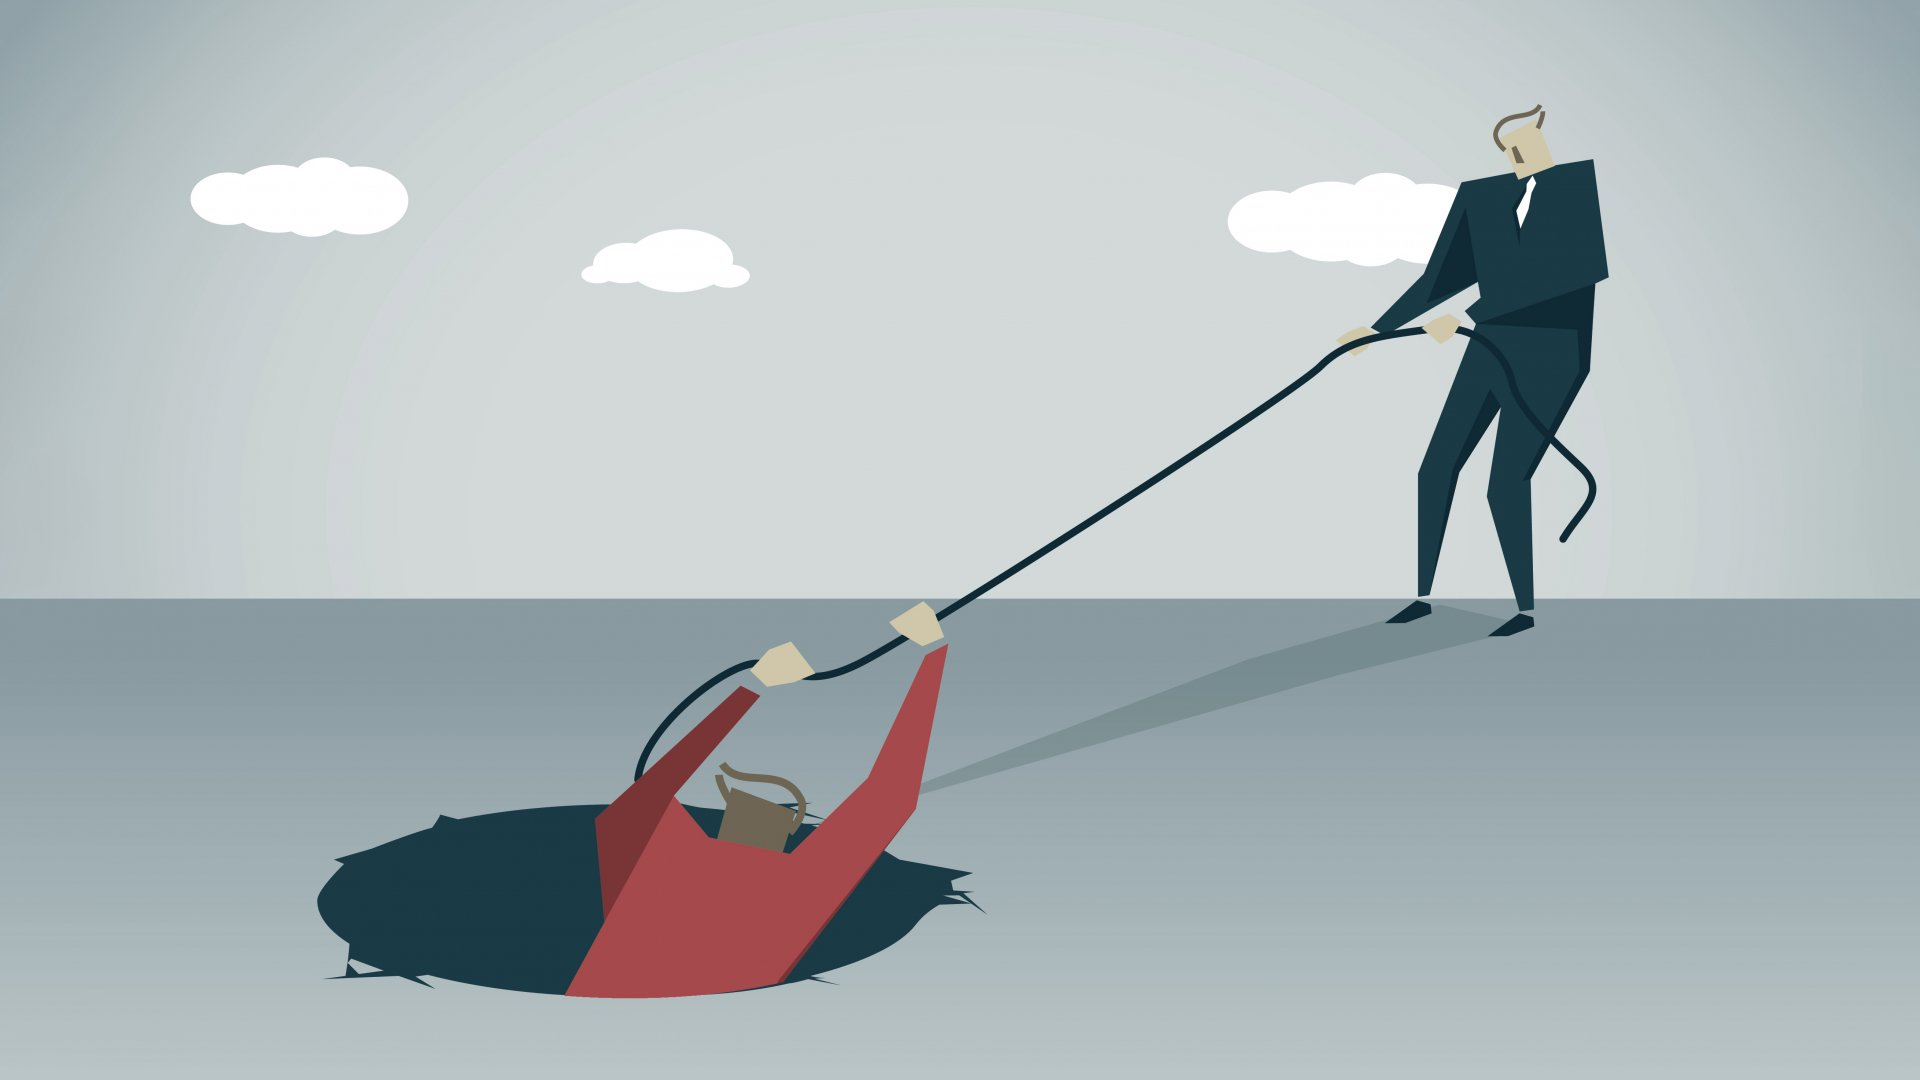 The No. 1 Thing a New Business Needs: Tough Love